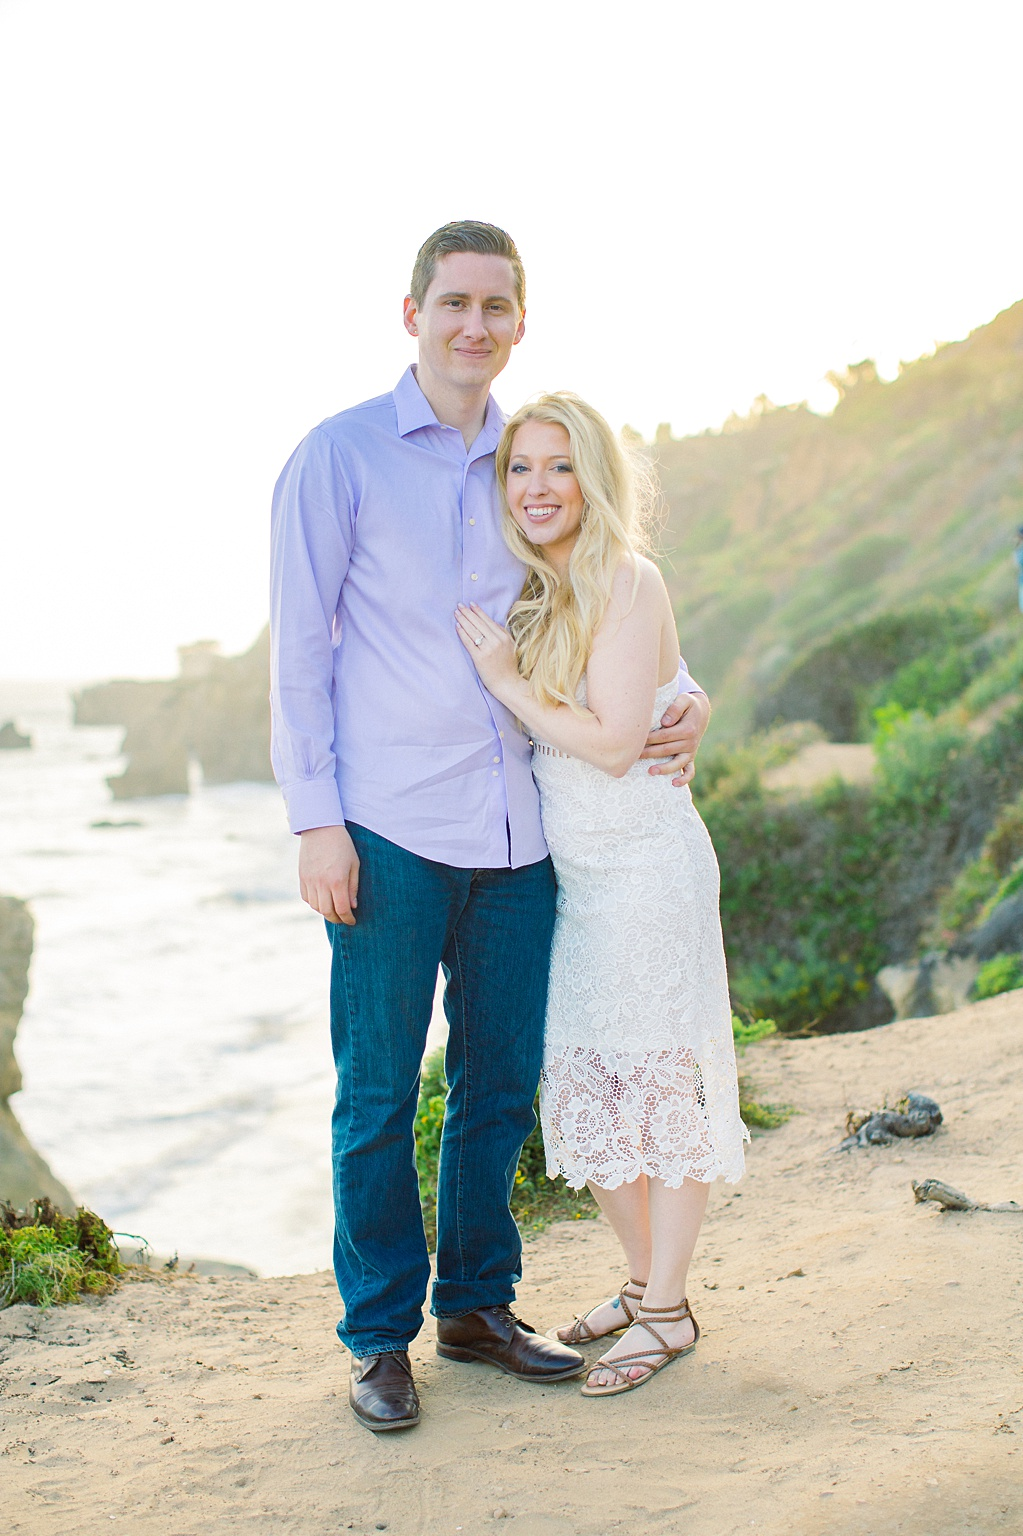 Malibu Engagement Session at El Matador State Beach by Madison Ellis Photography (10)